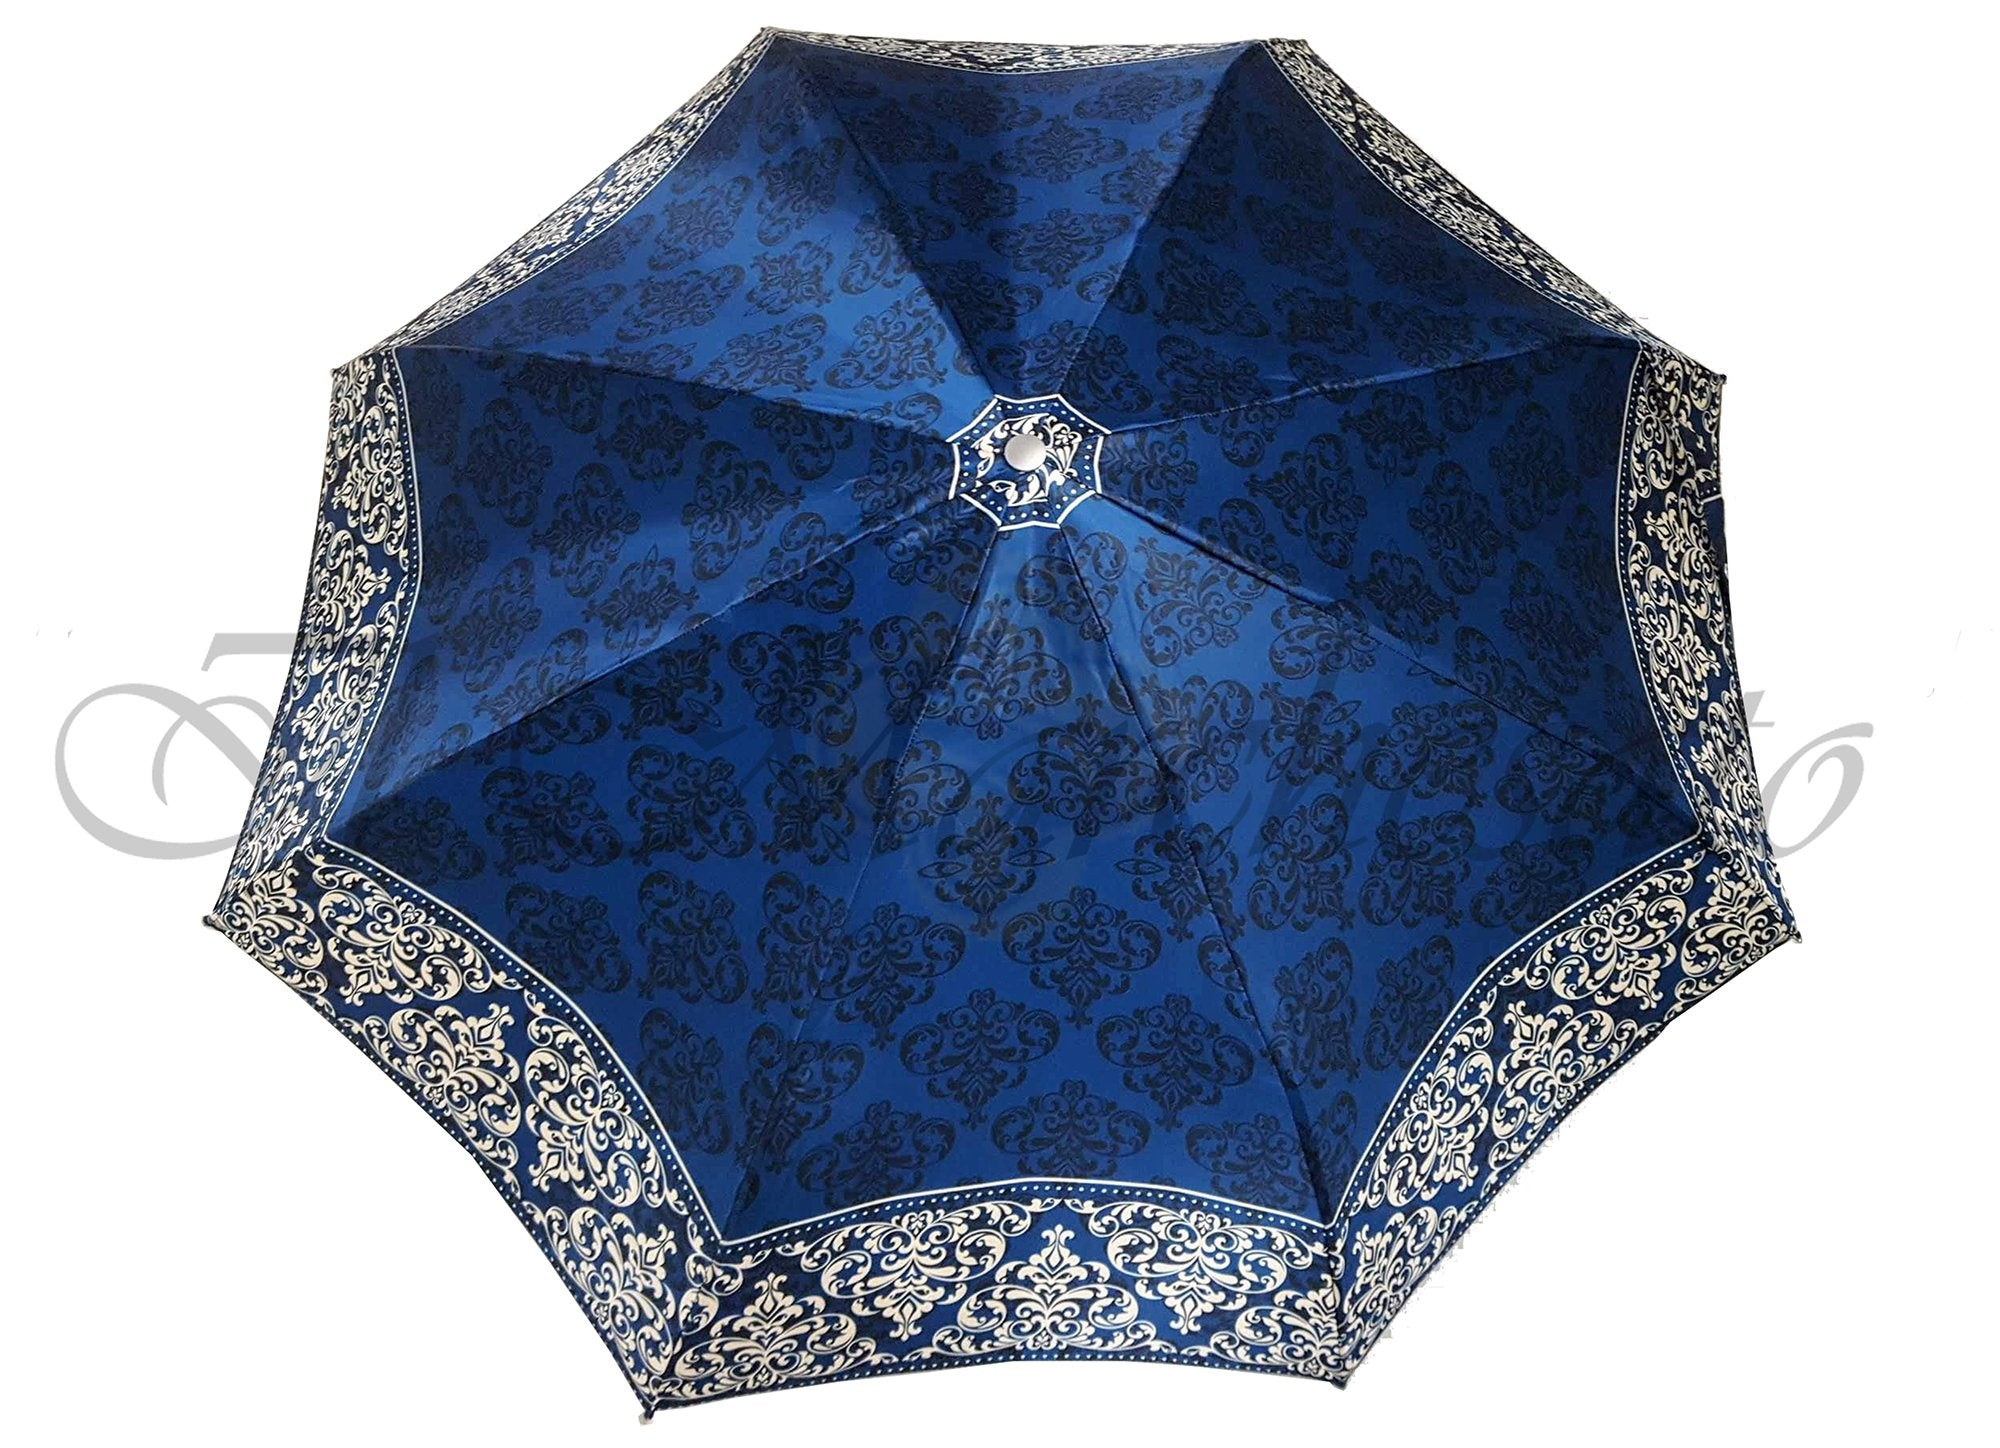 Stylish Women's Folding Umbrella - Exclusive Design - il-marchesato